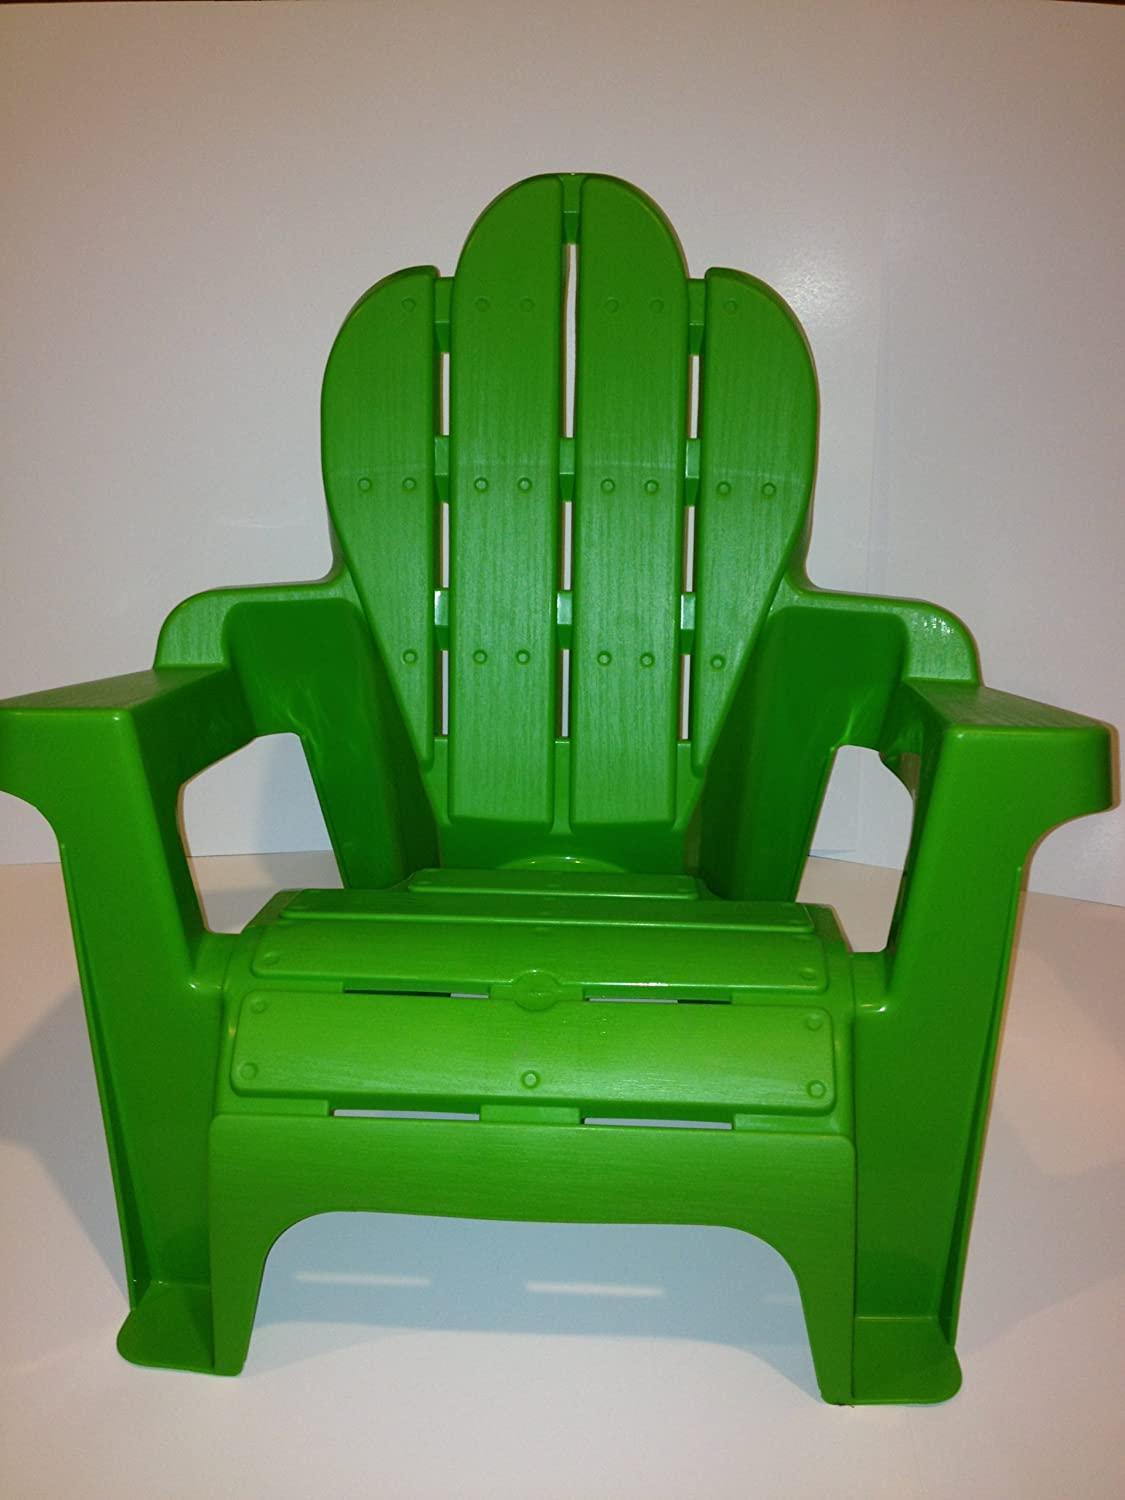 Amazon.com : Kidu0027s Plastic Adirondack Chair, Green, Scallop Top, Light  Weight : Garden U0026 Outdoor